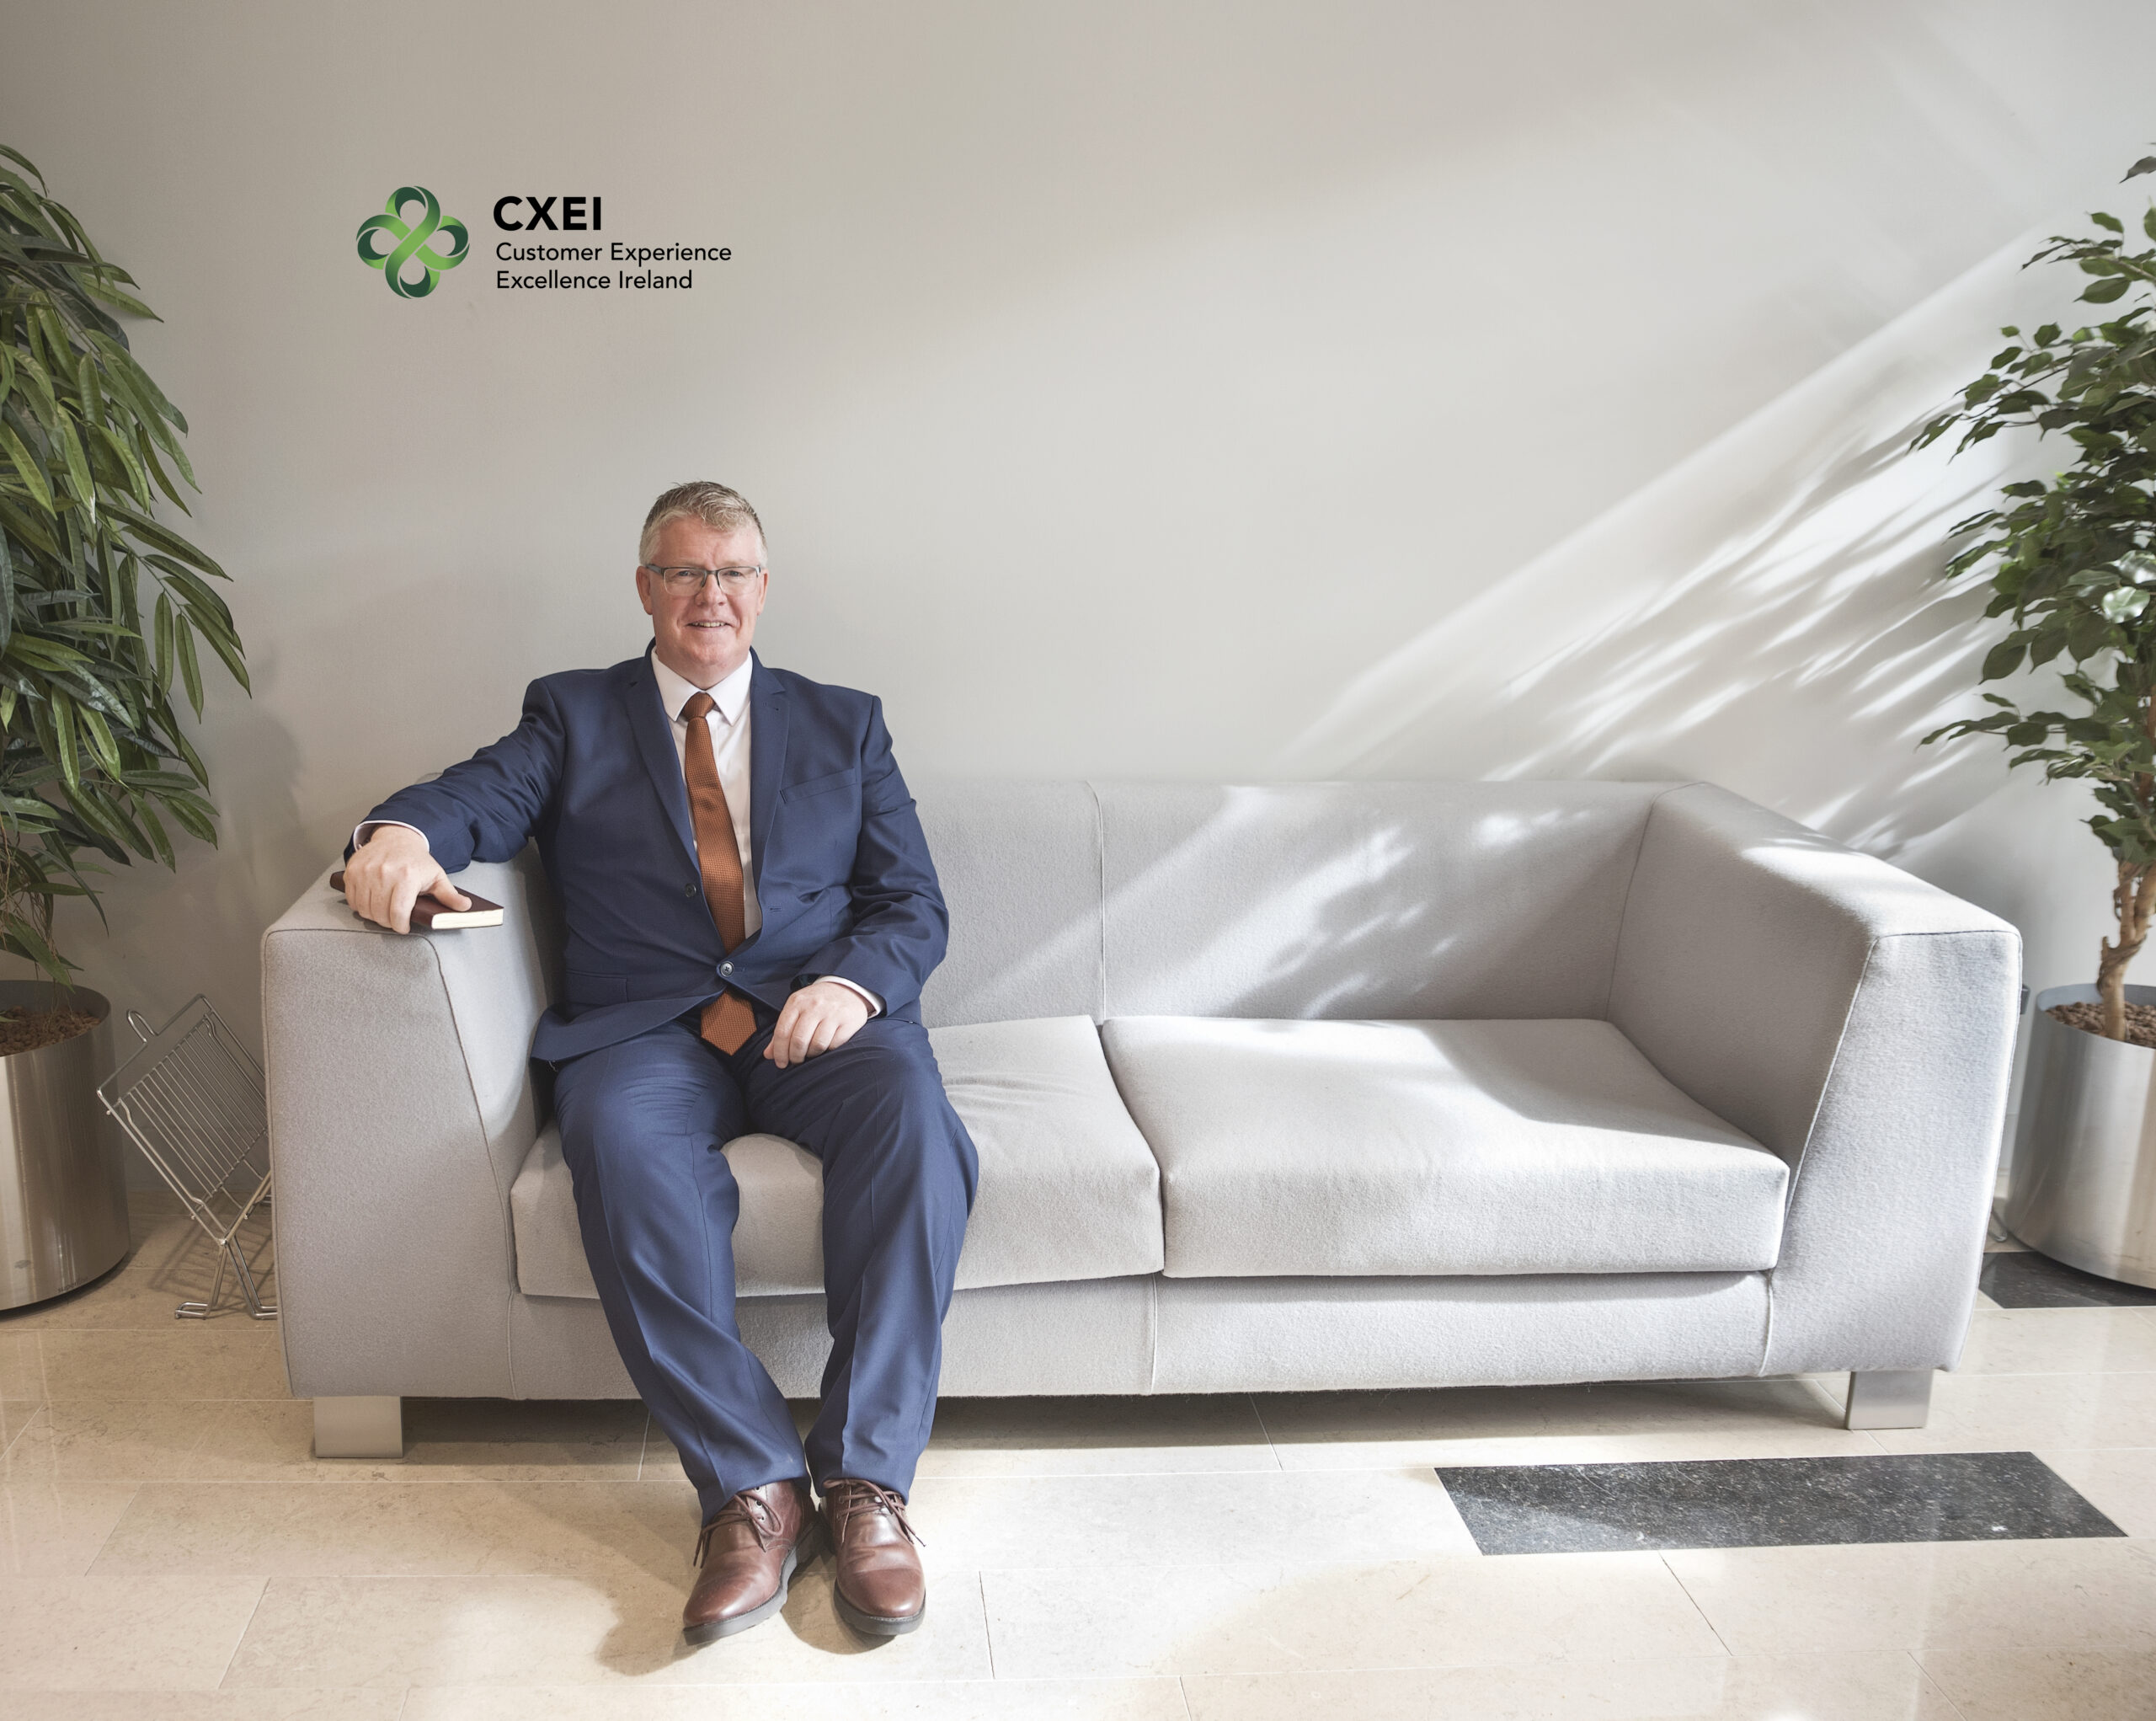 Charlie Boyle, CEO of CXEI, sitting on couch in office, Coloured